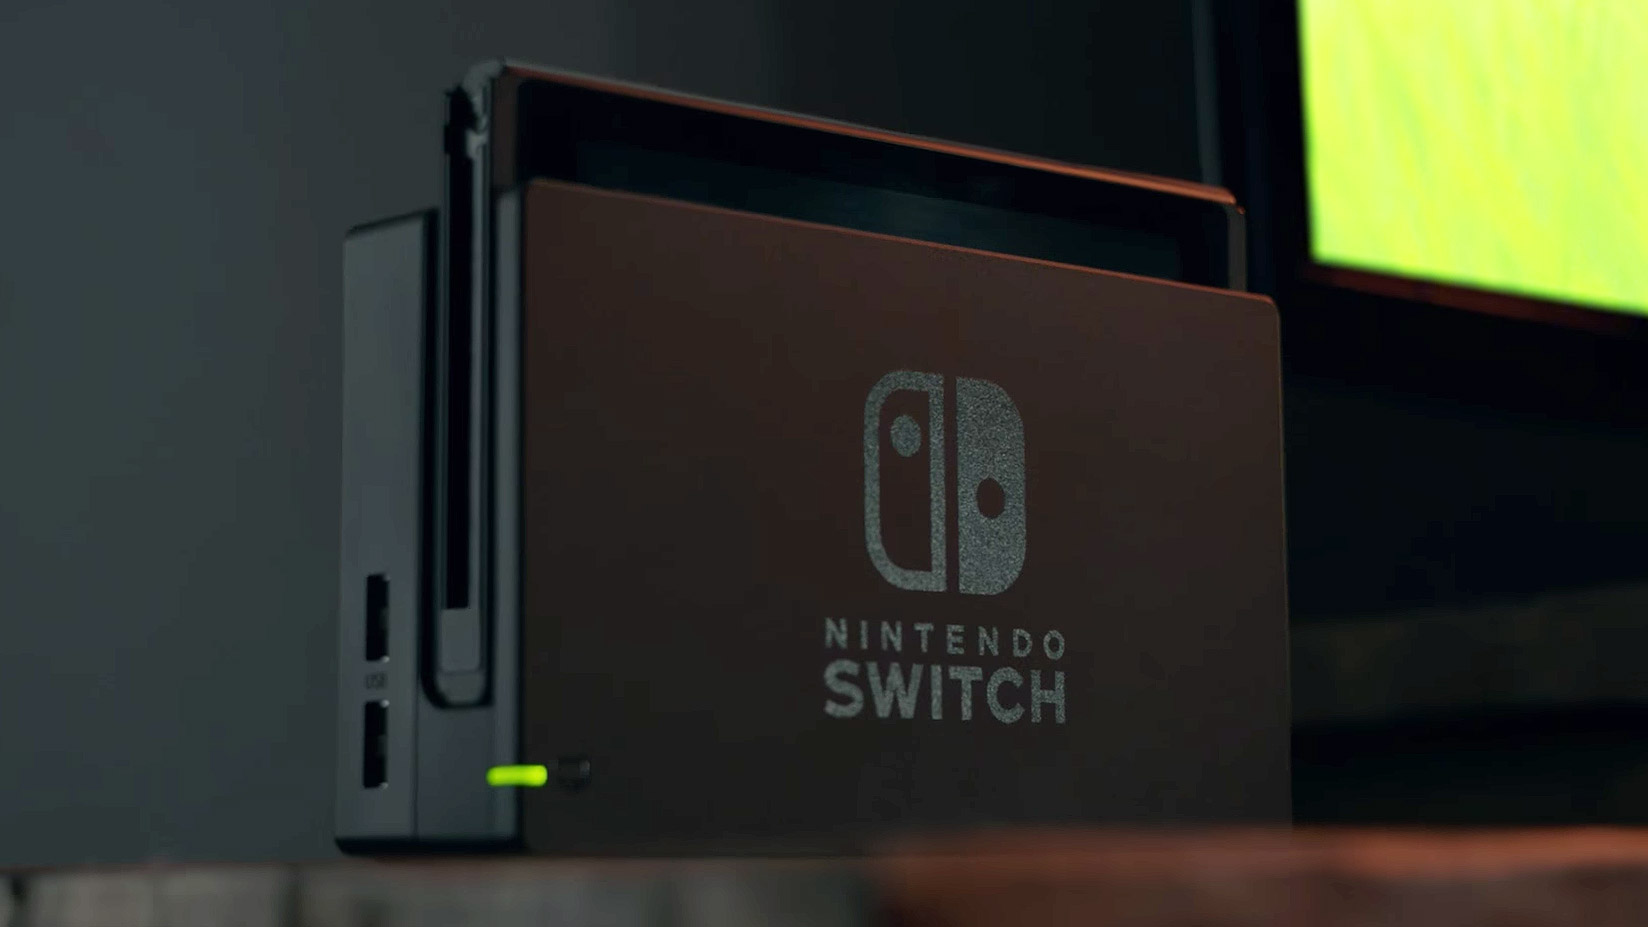 Nintendo Switch: Das stationäre Modul